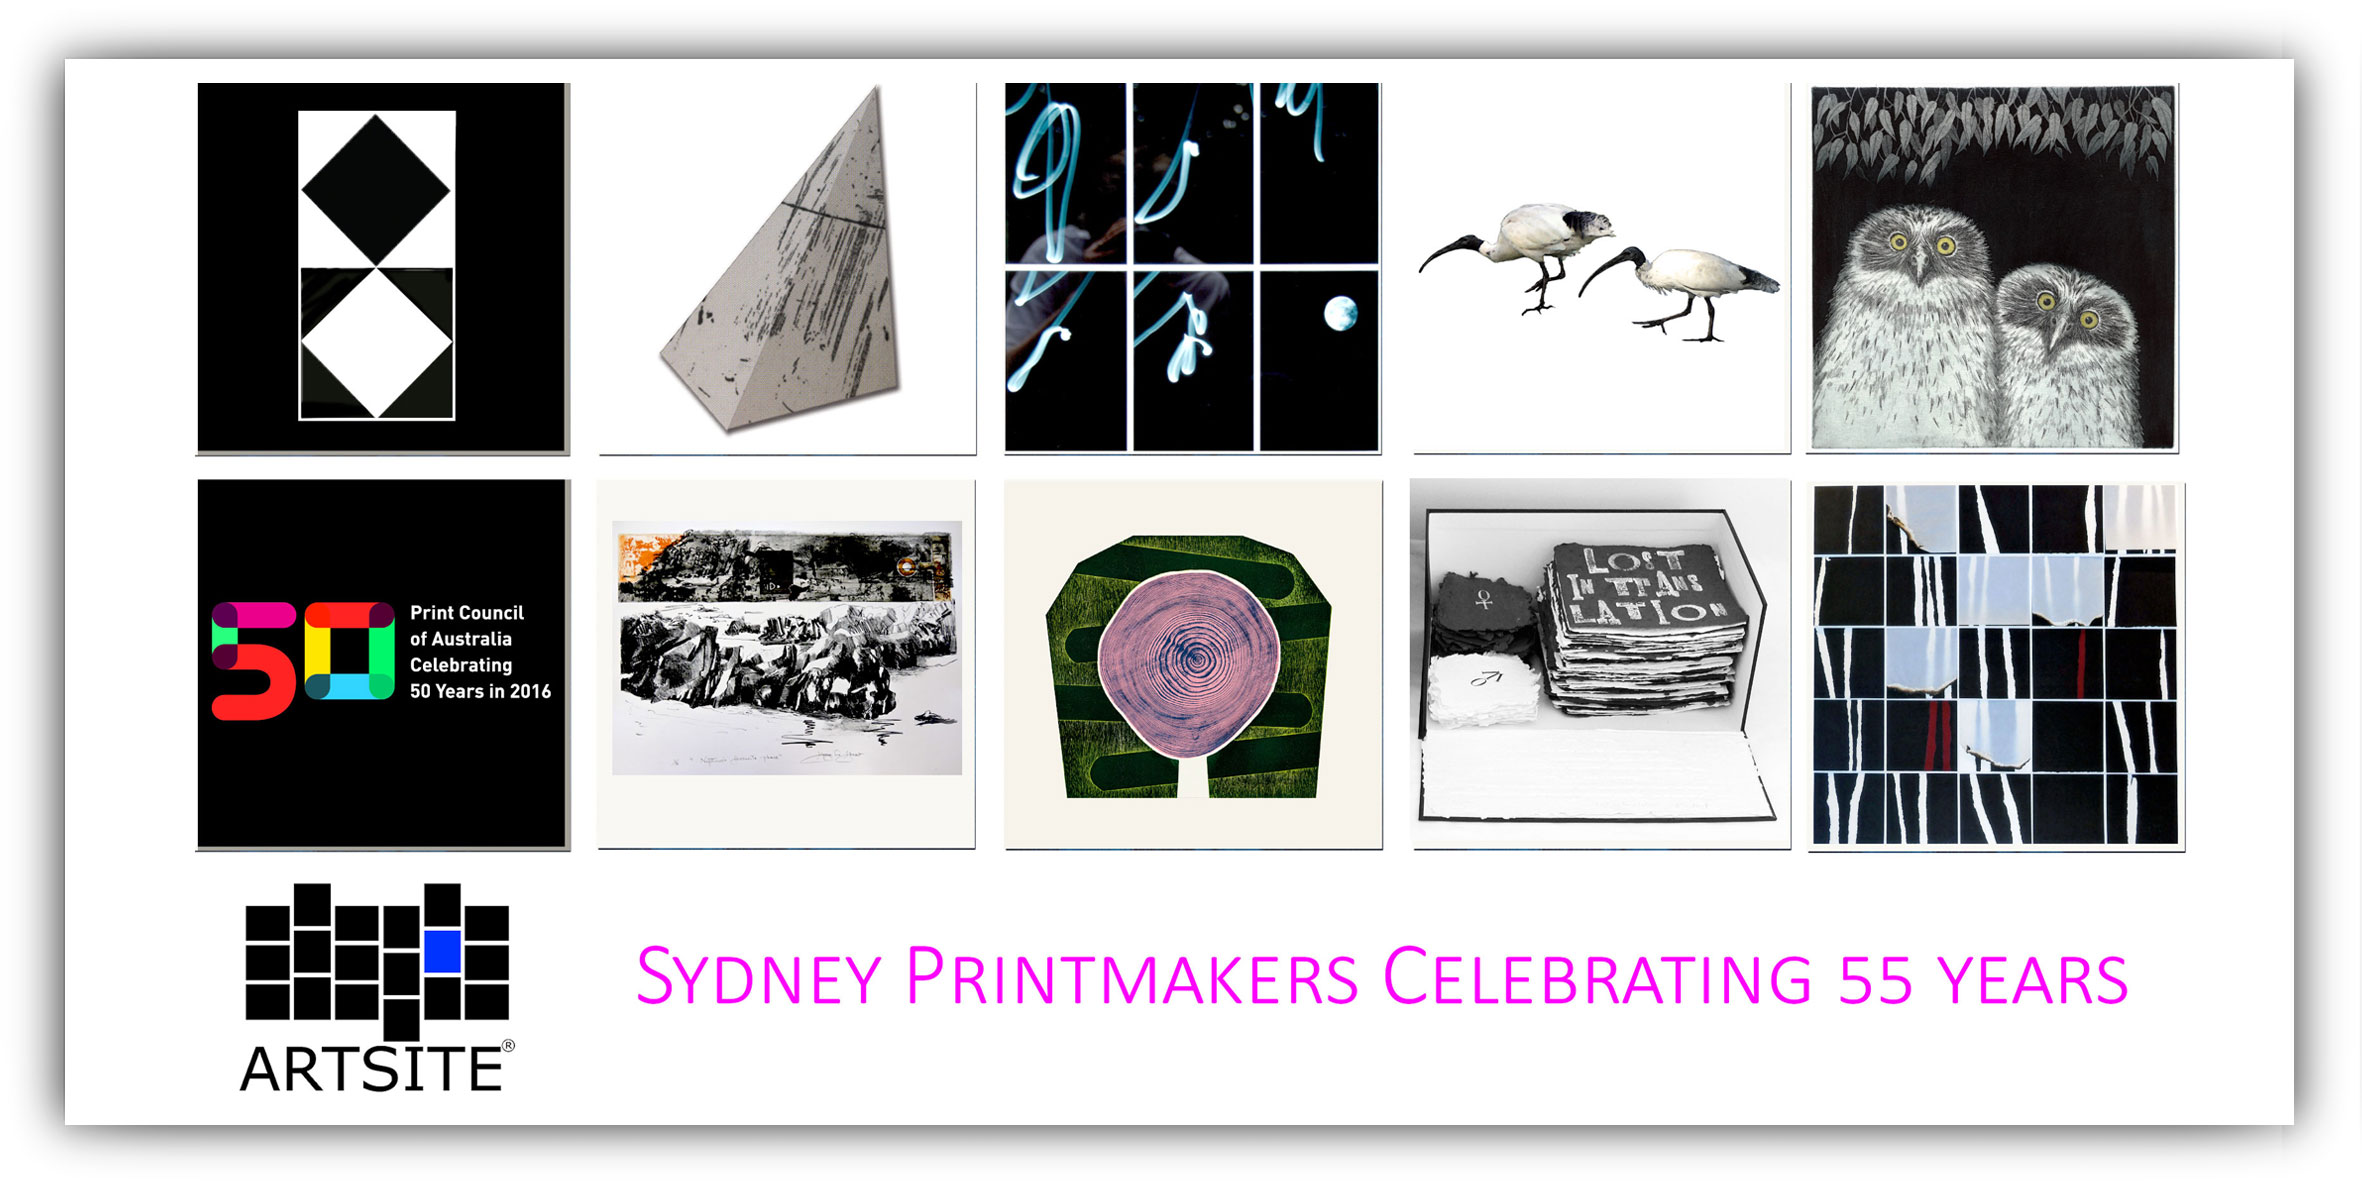 View Exhibition at Artsite Gallery, 05 - 27 March 2016: Sydney Printmakers Celebrating 55 years - 1961-2016 An Exhibition from Australia's top artist printmakers in both traditional and contemporary practice